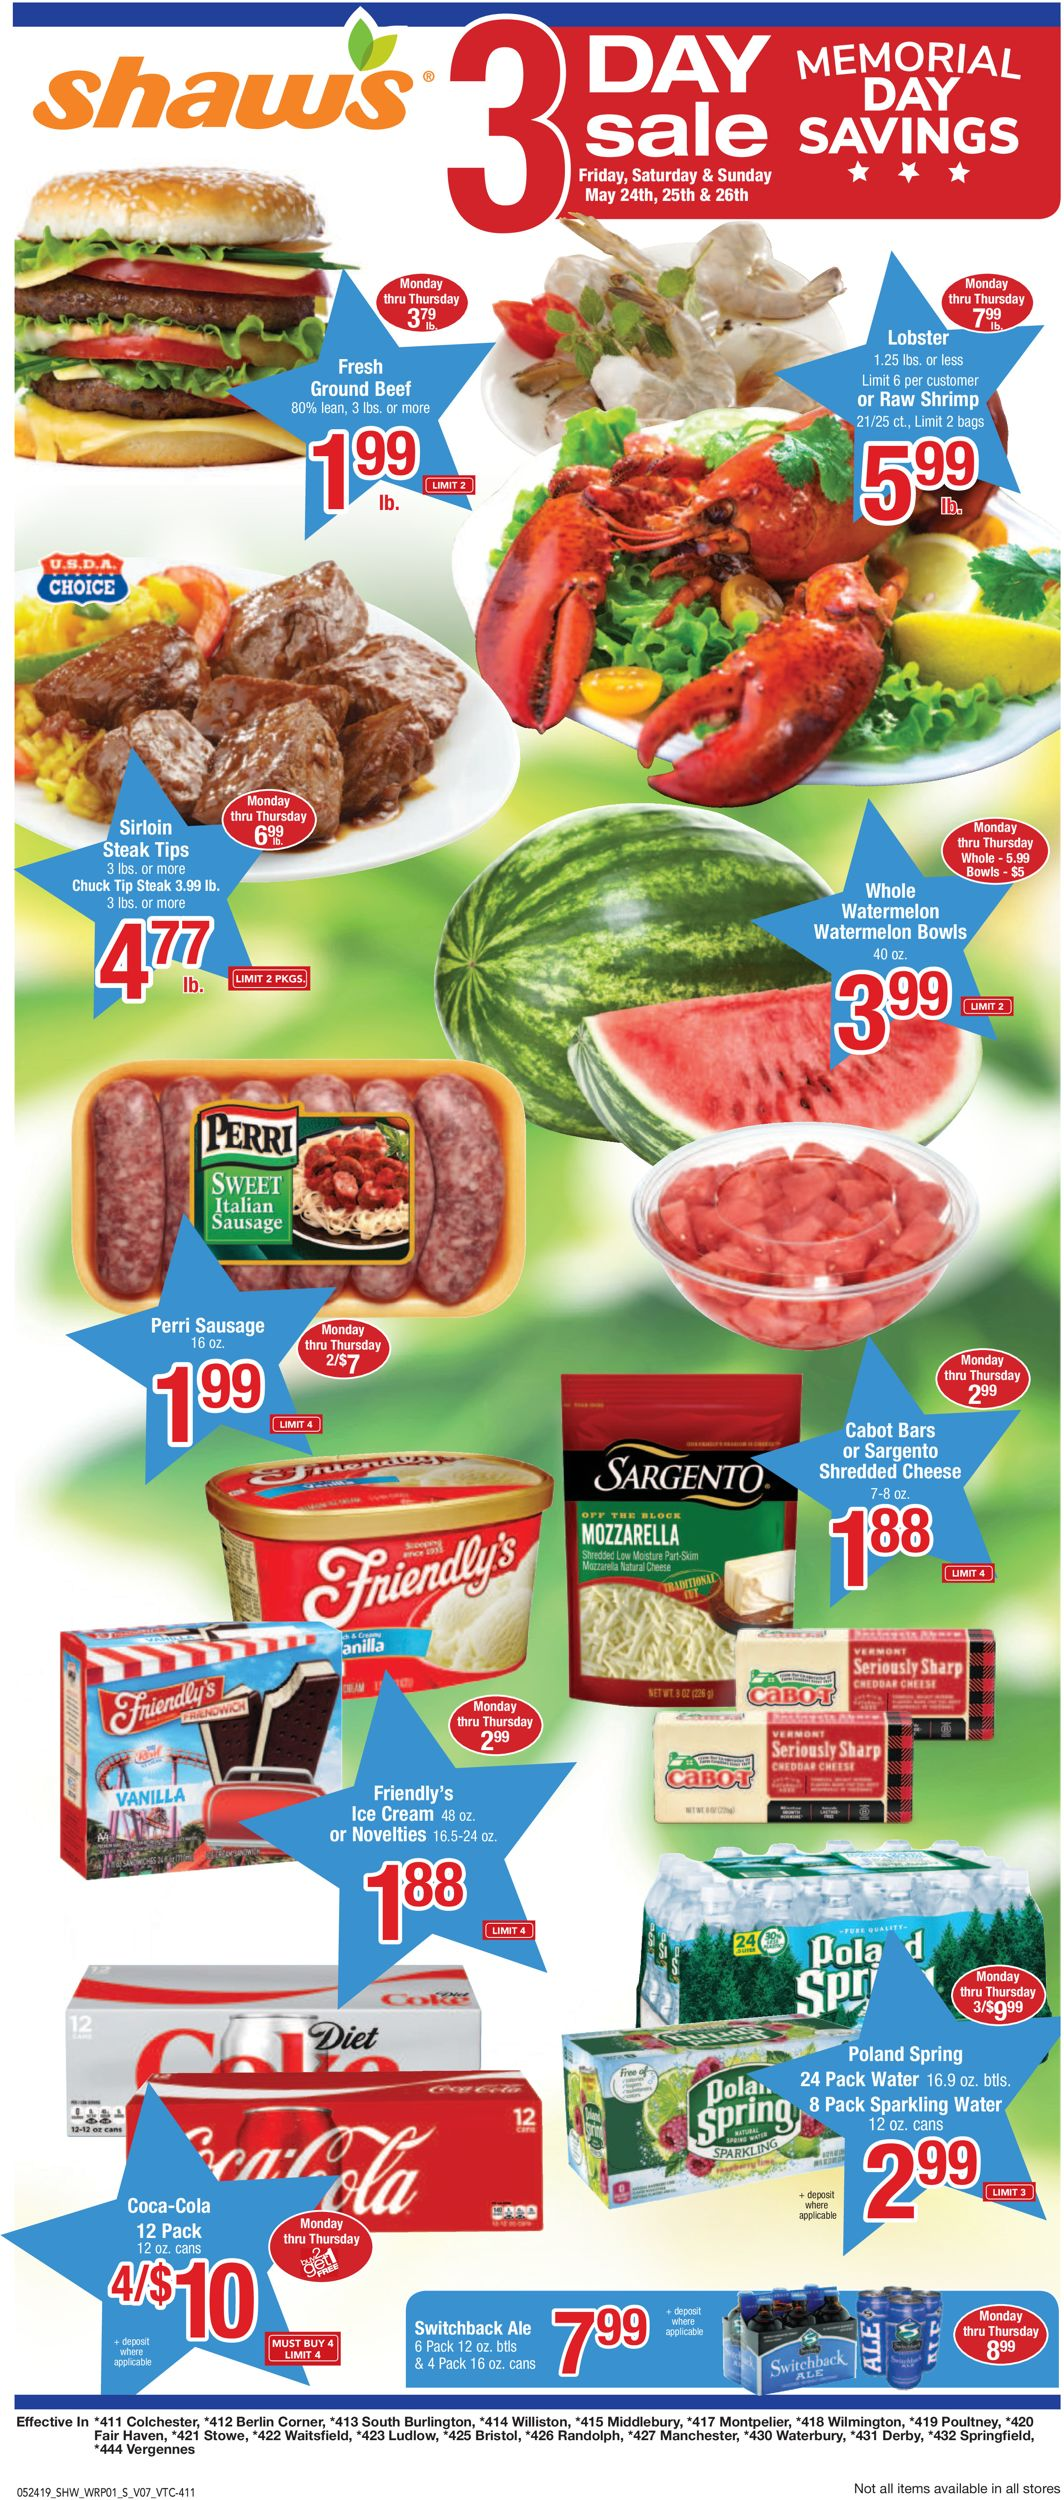 Shaw's Current weekly ad 05/24 - 05/30/2019 - weekly-ad-24 com